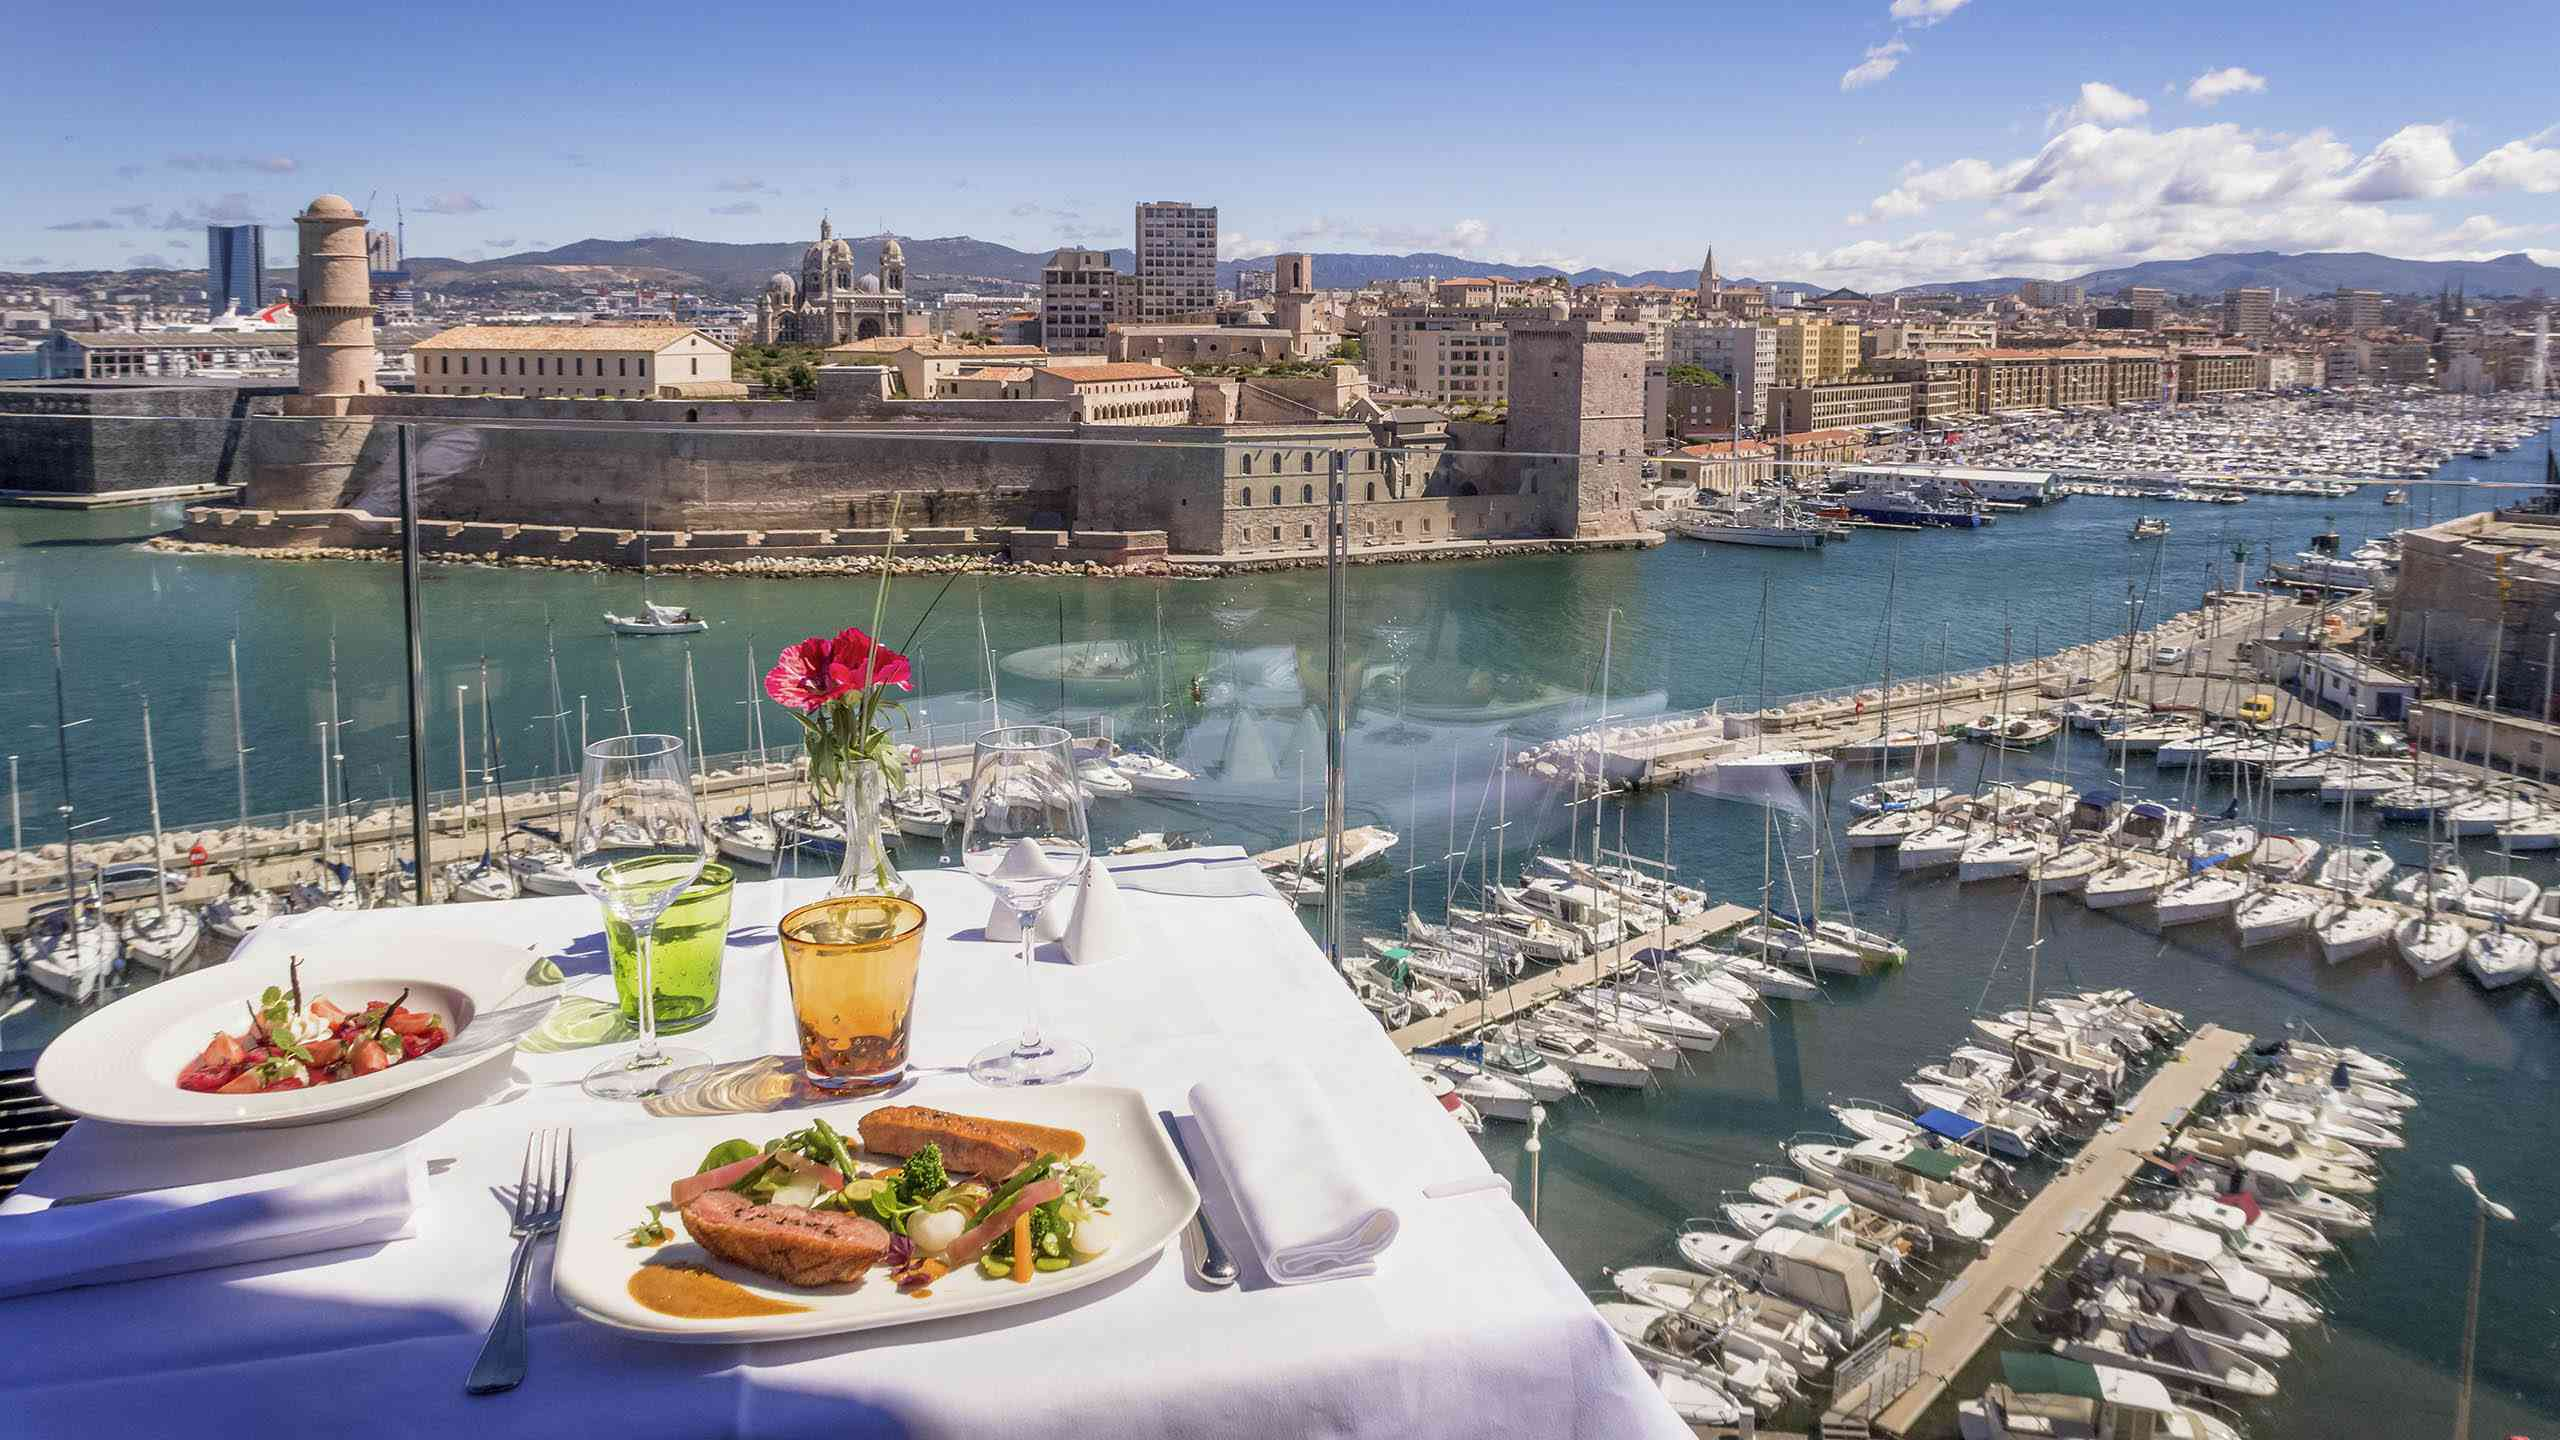 Breakfast with a view at Sofitel Marseille Vieux Port